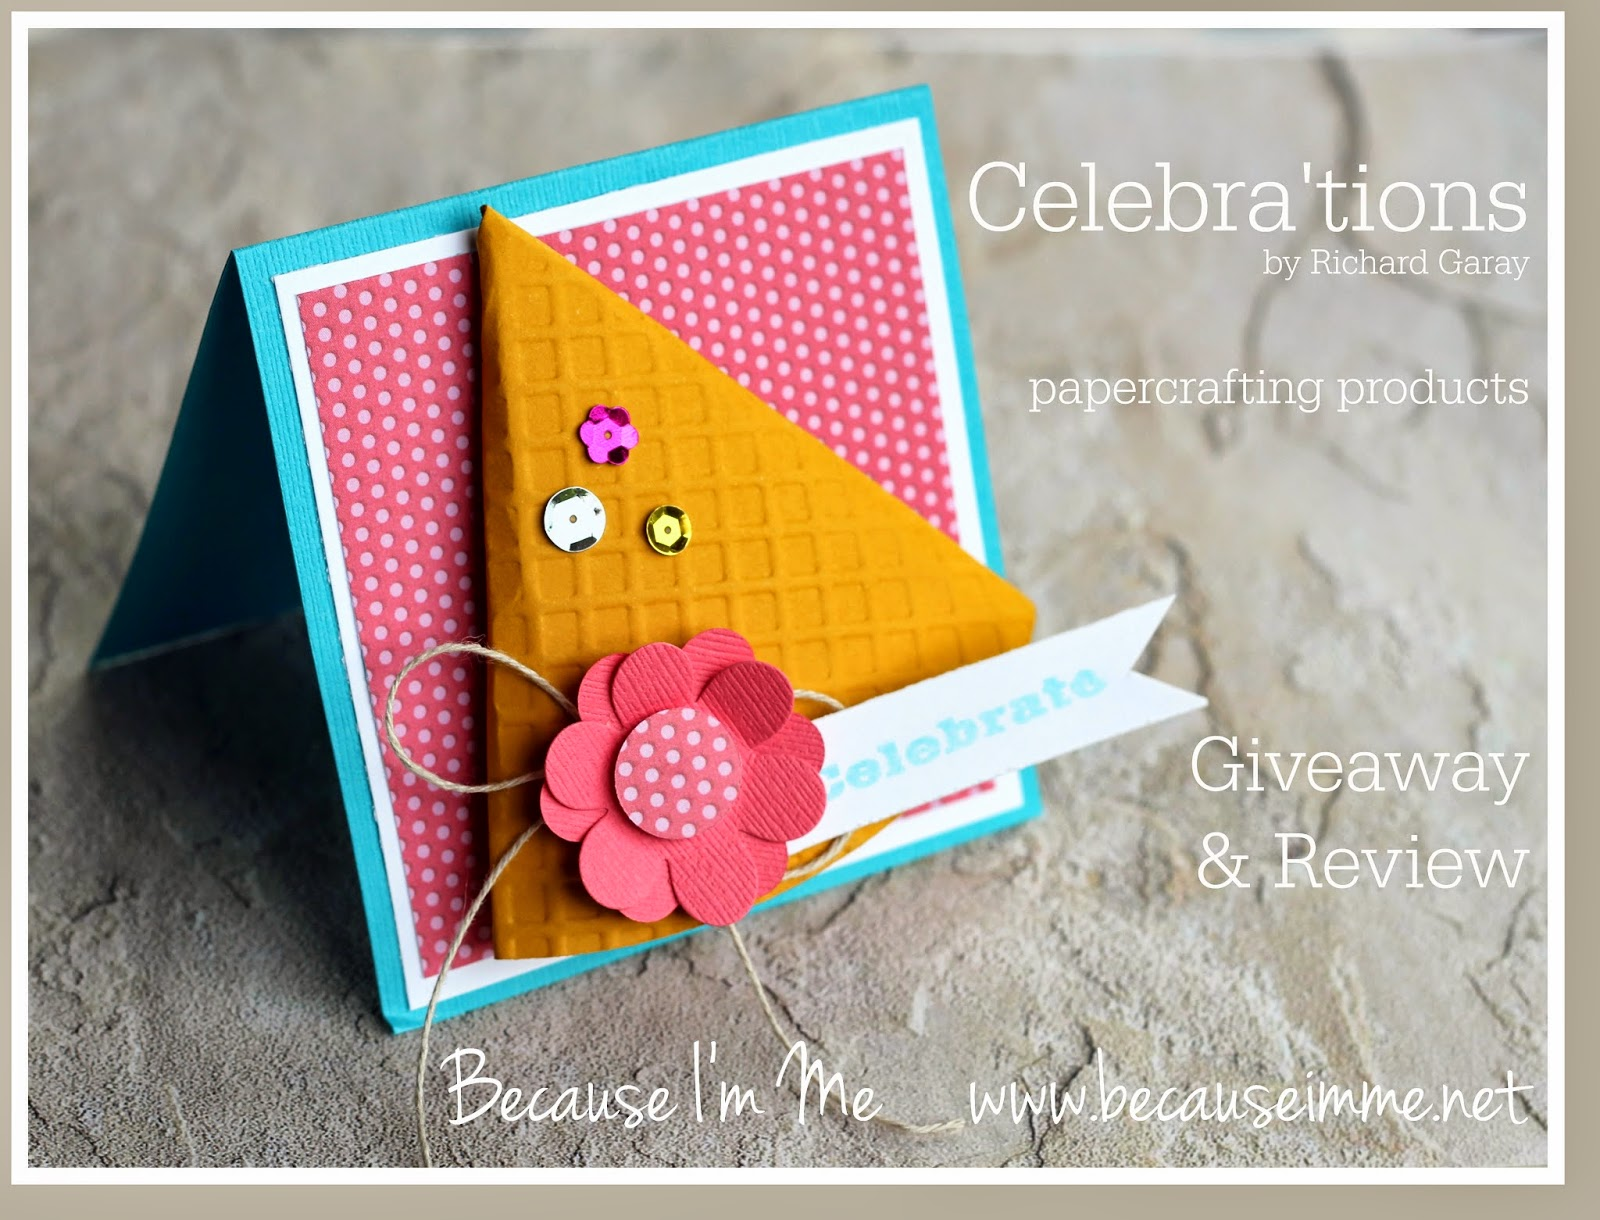 Because I'm Me and Celebra-tions Giveway! Ends 7/18/14